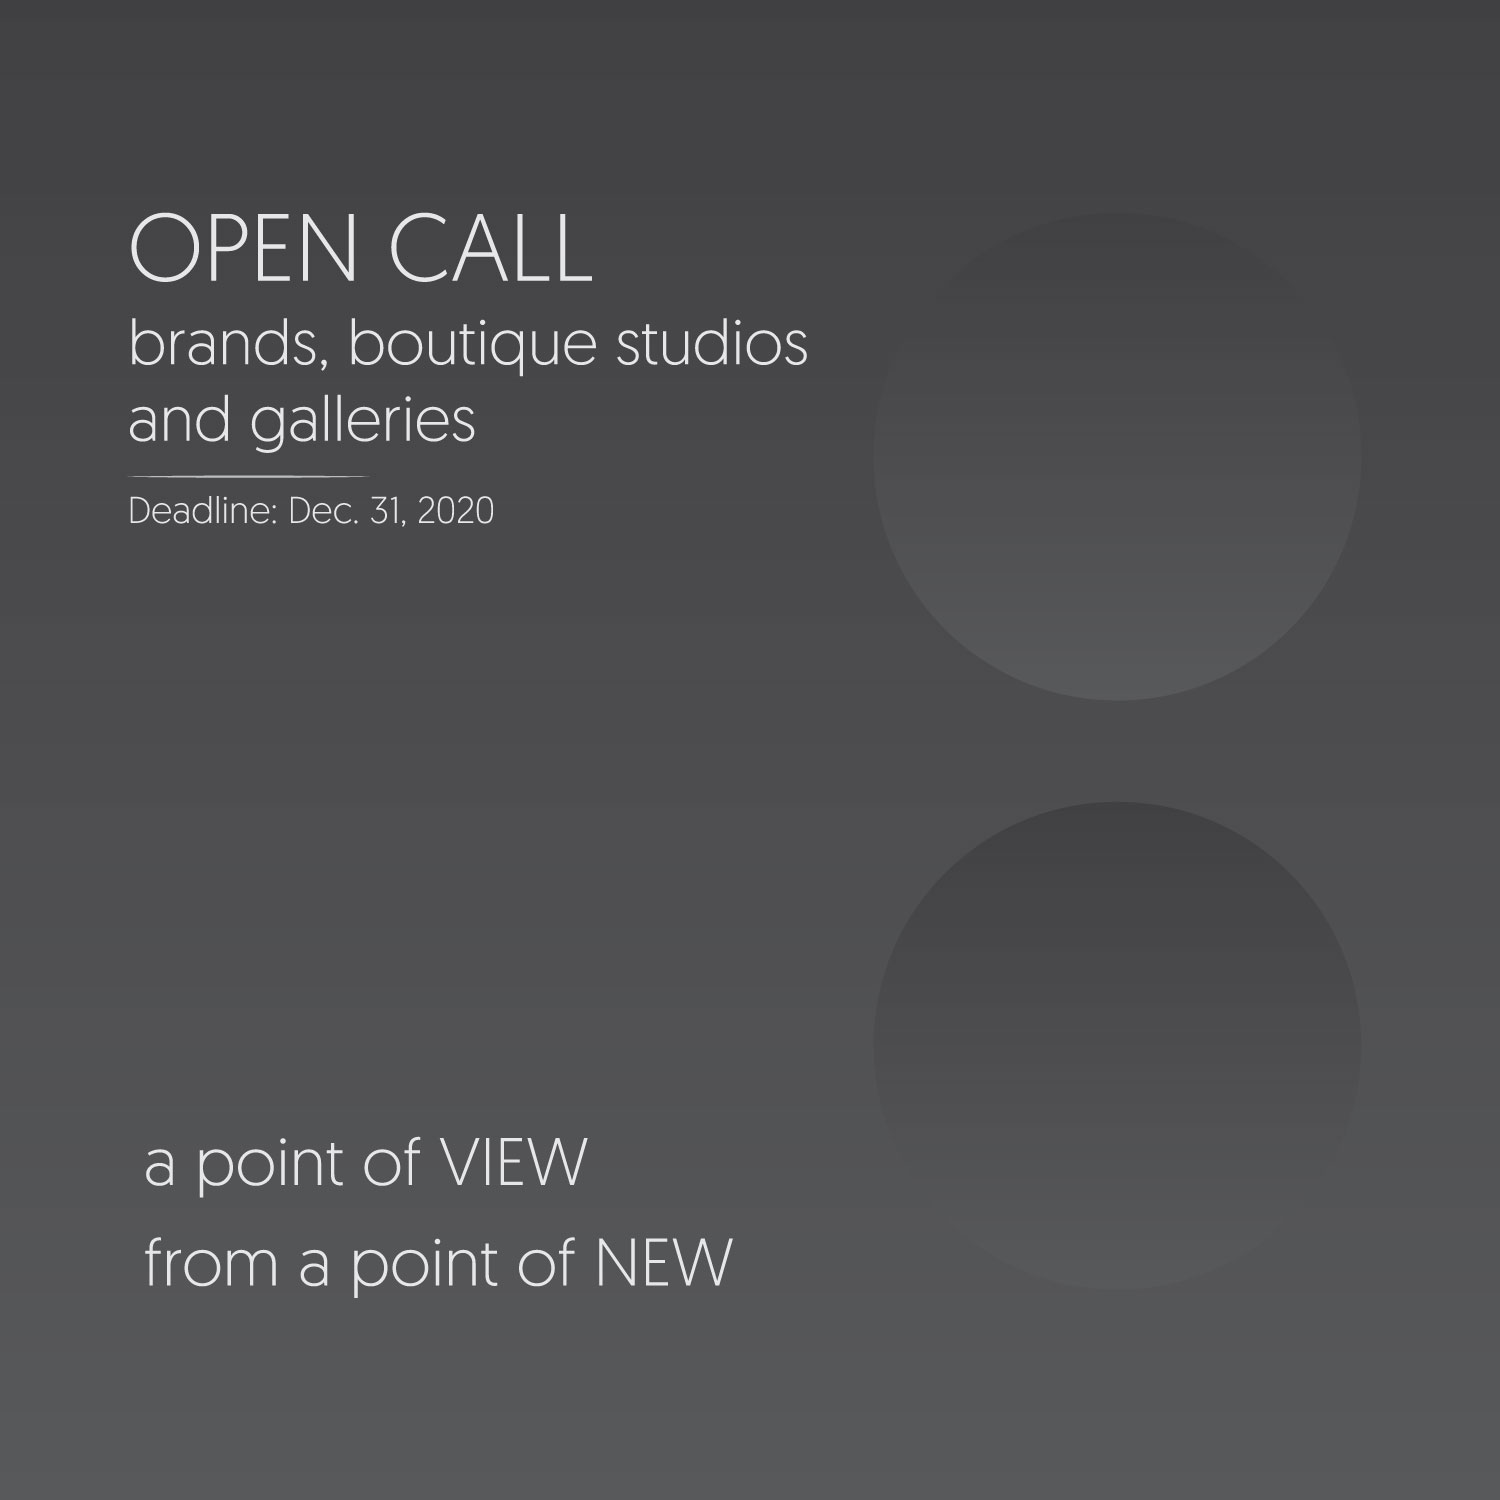 OPEN CALL: a point of NEW for Brands and Galleries